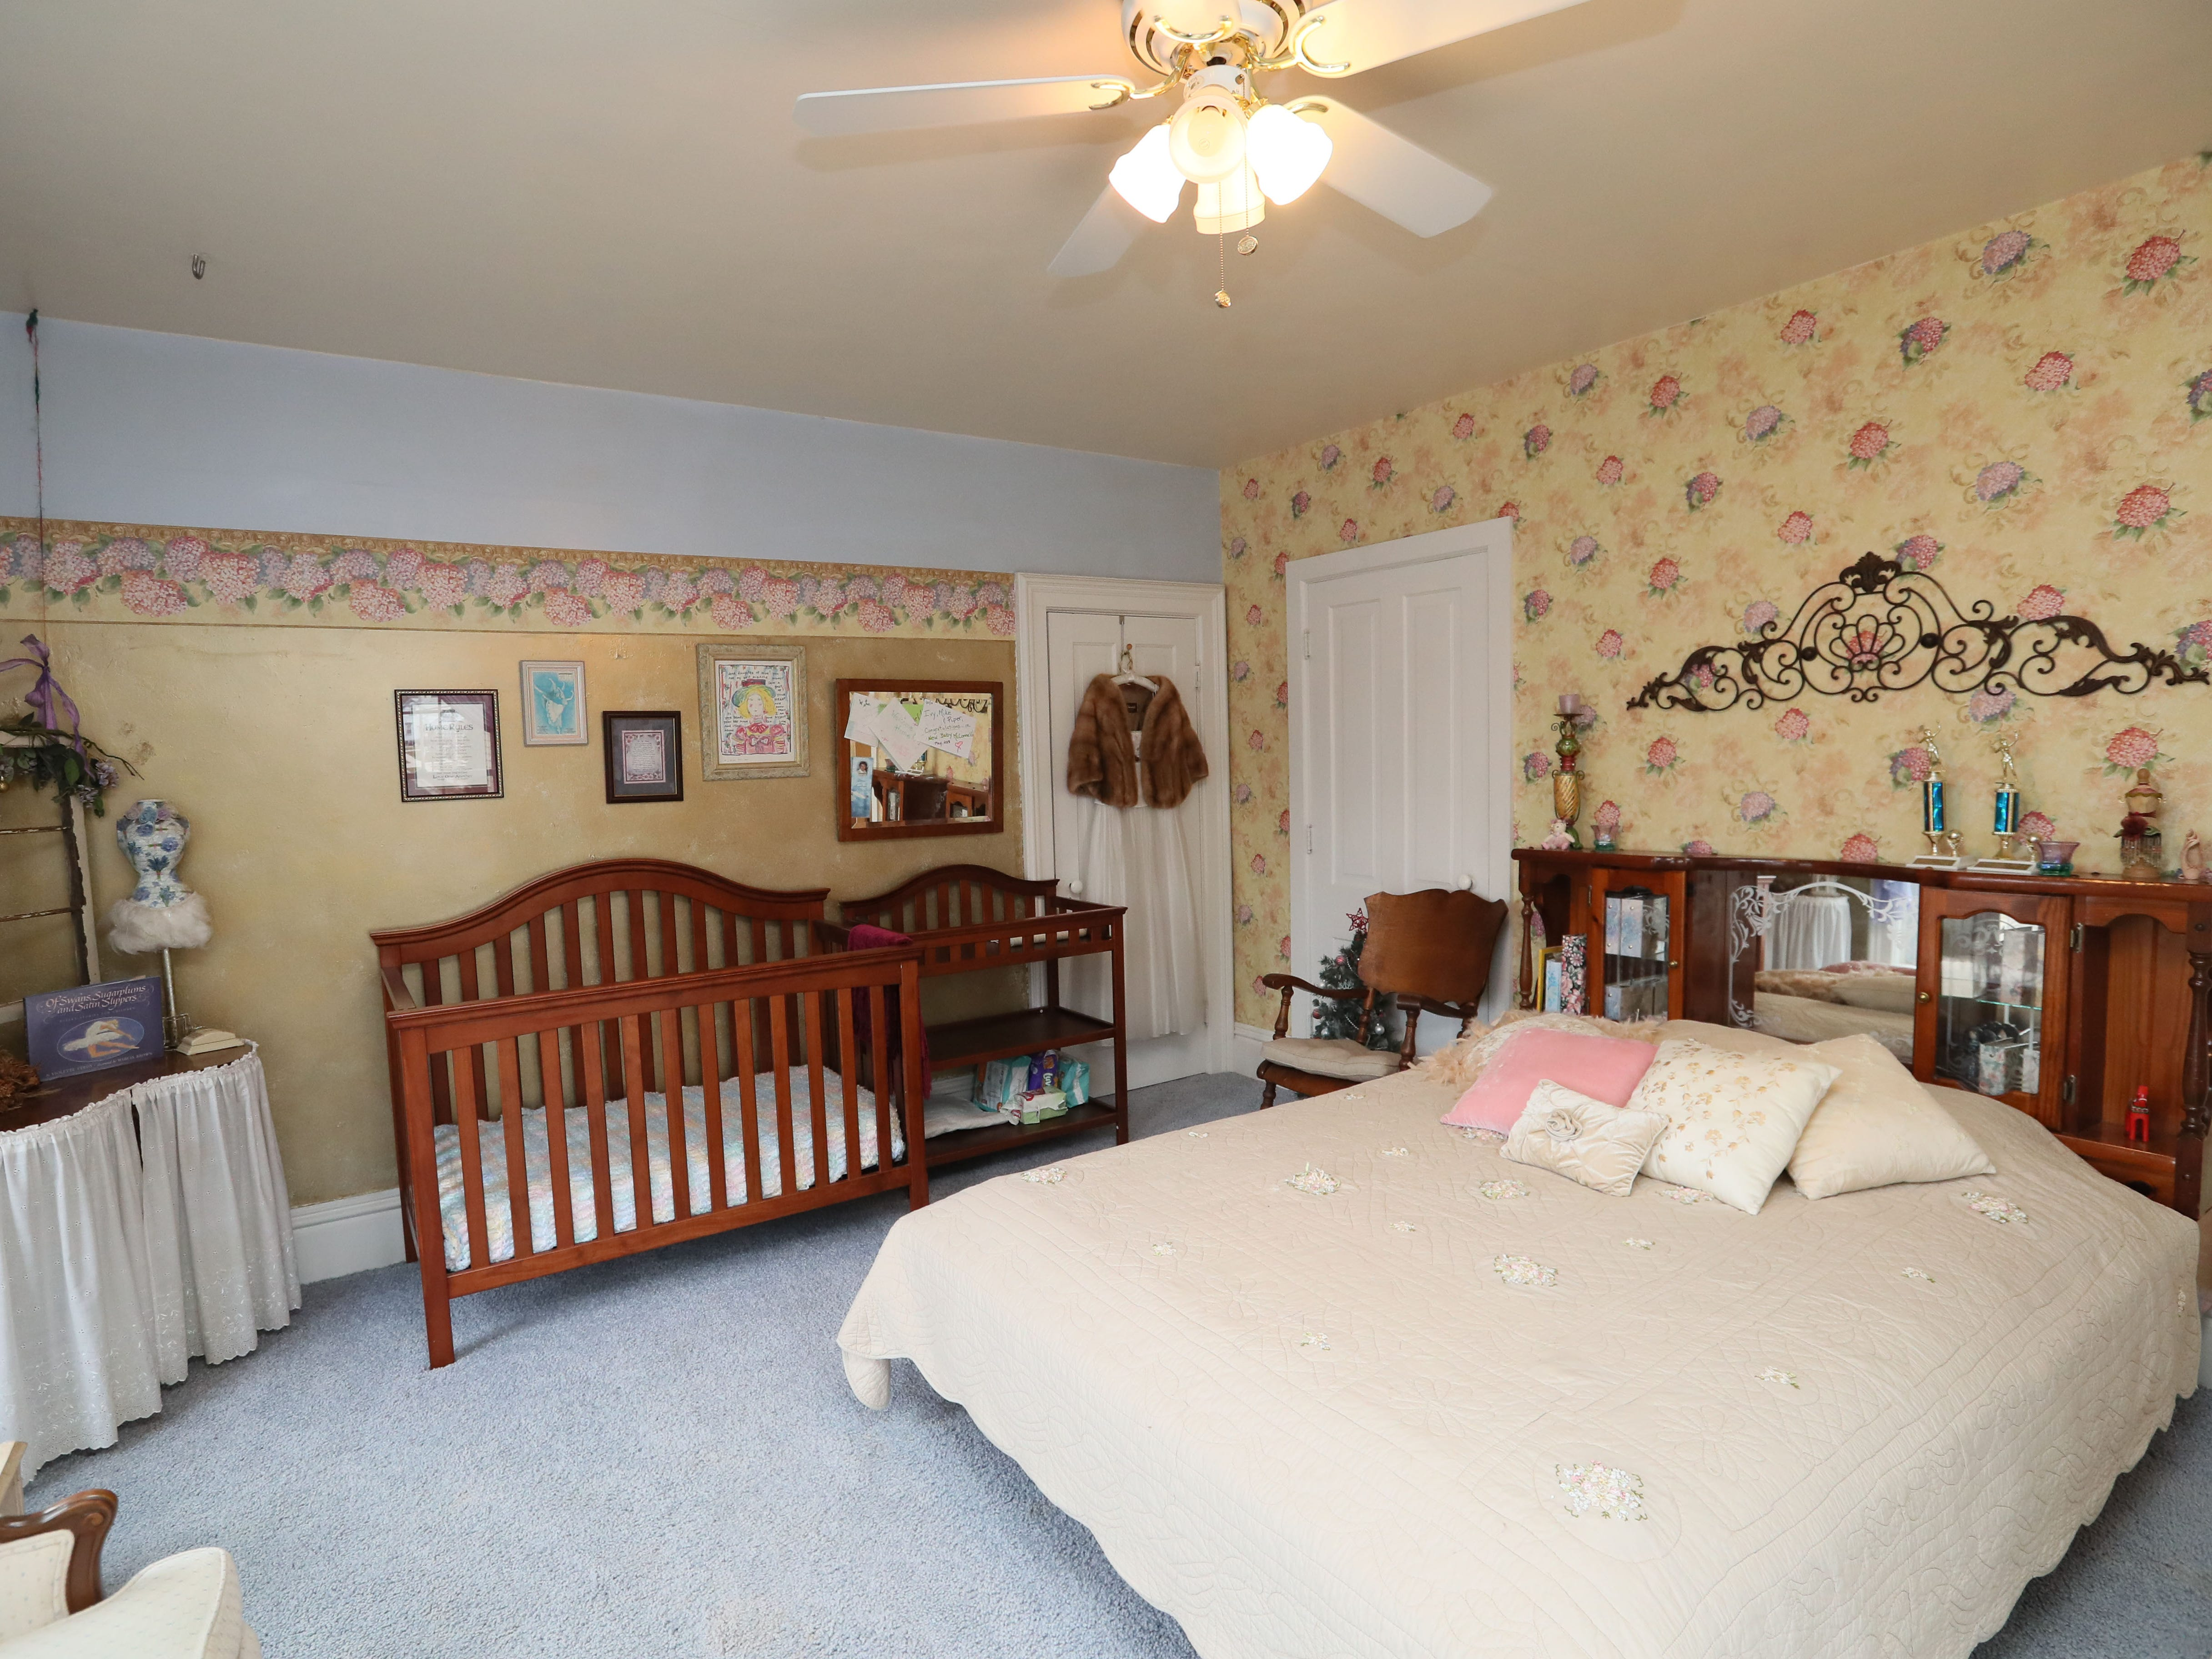 This guest bedroom had been their daughter's when she lived at home.